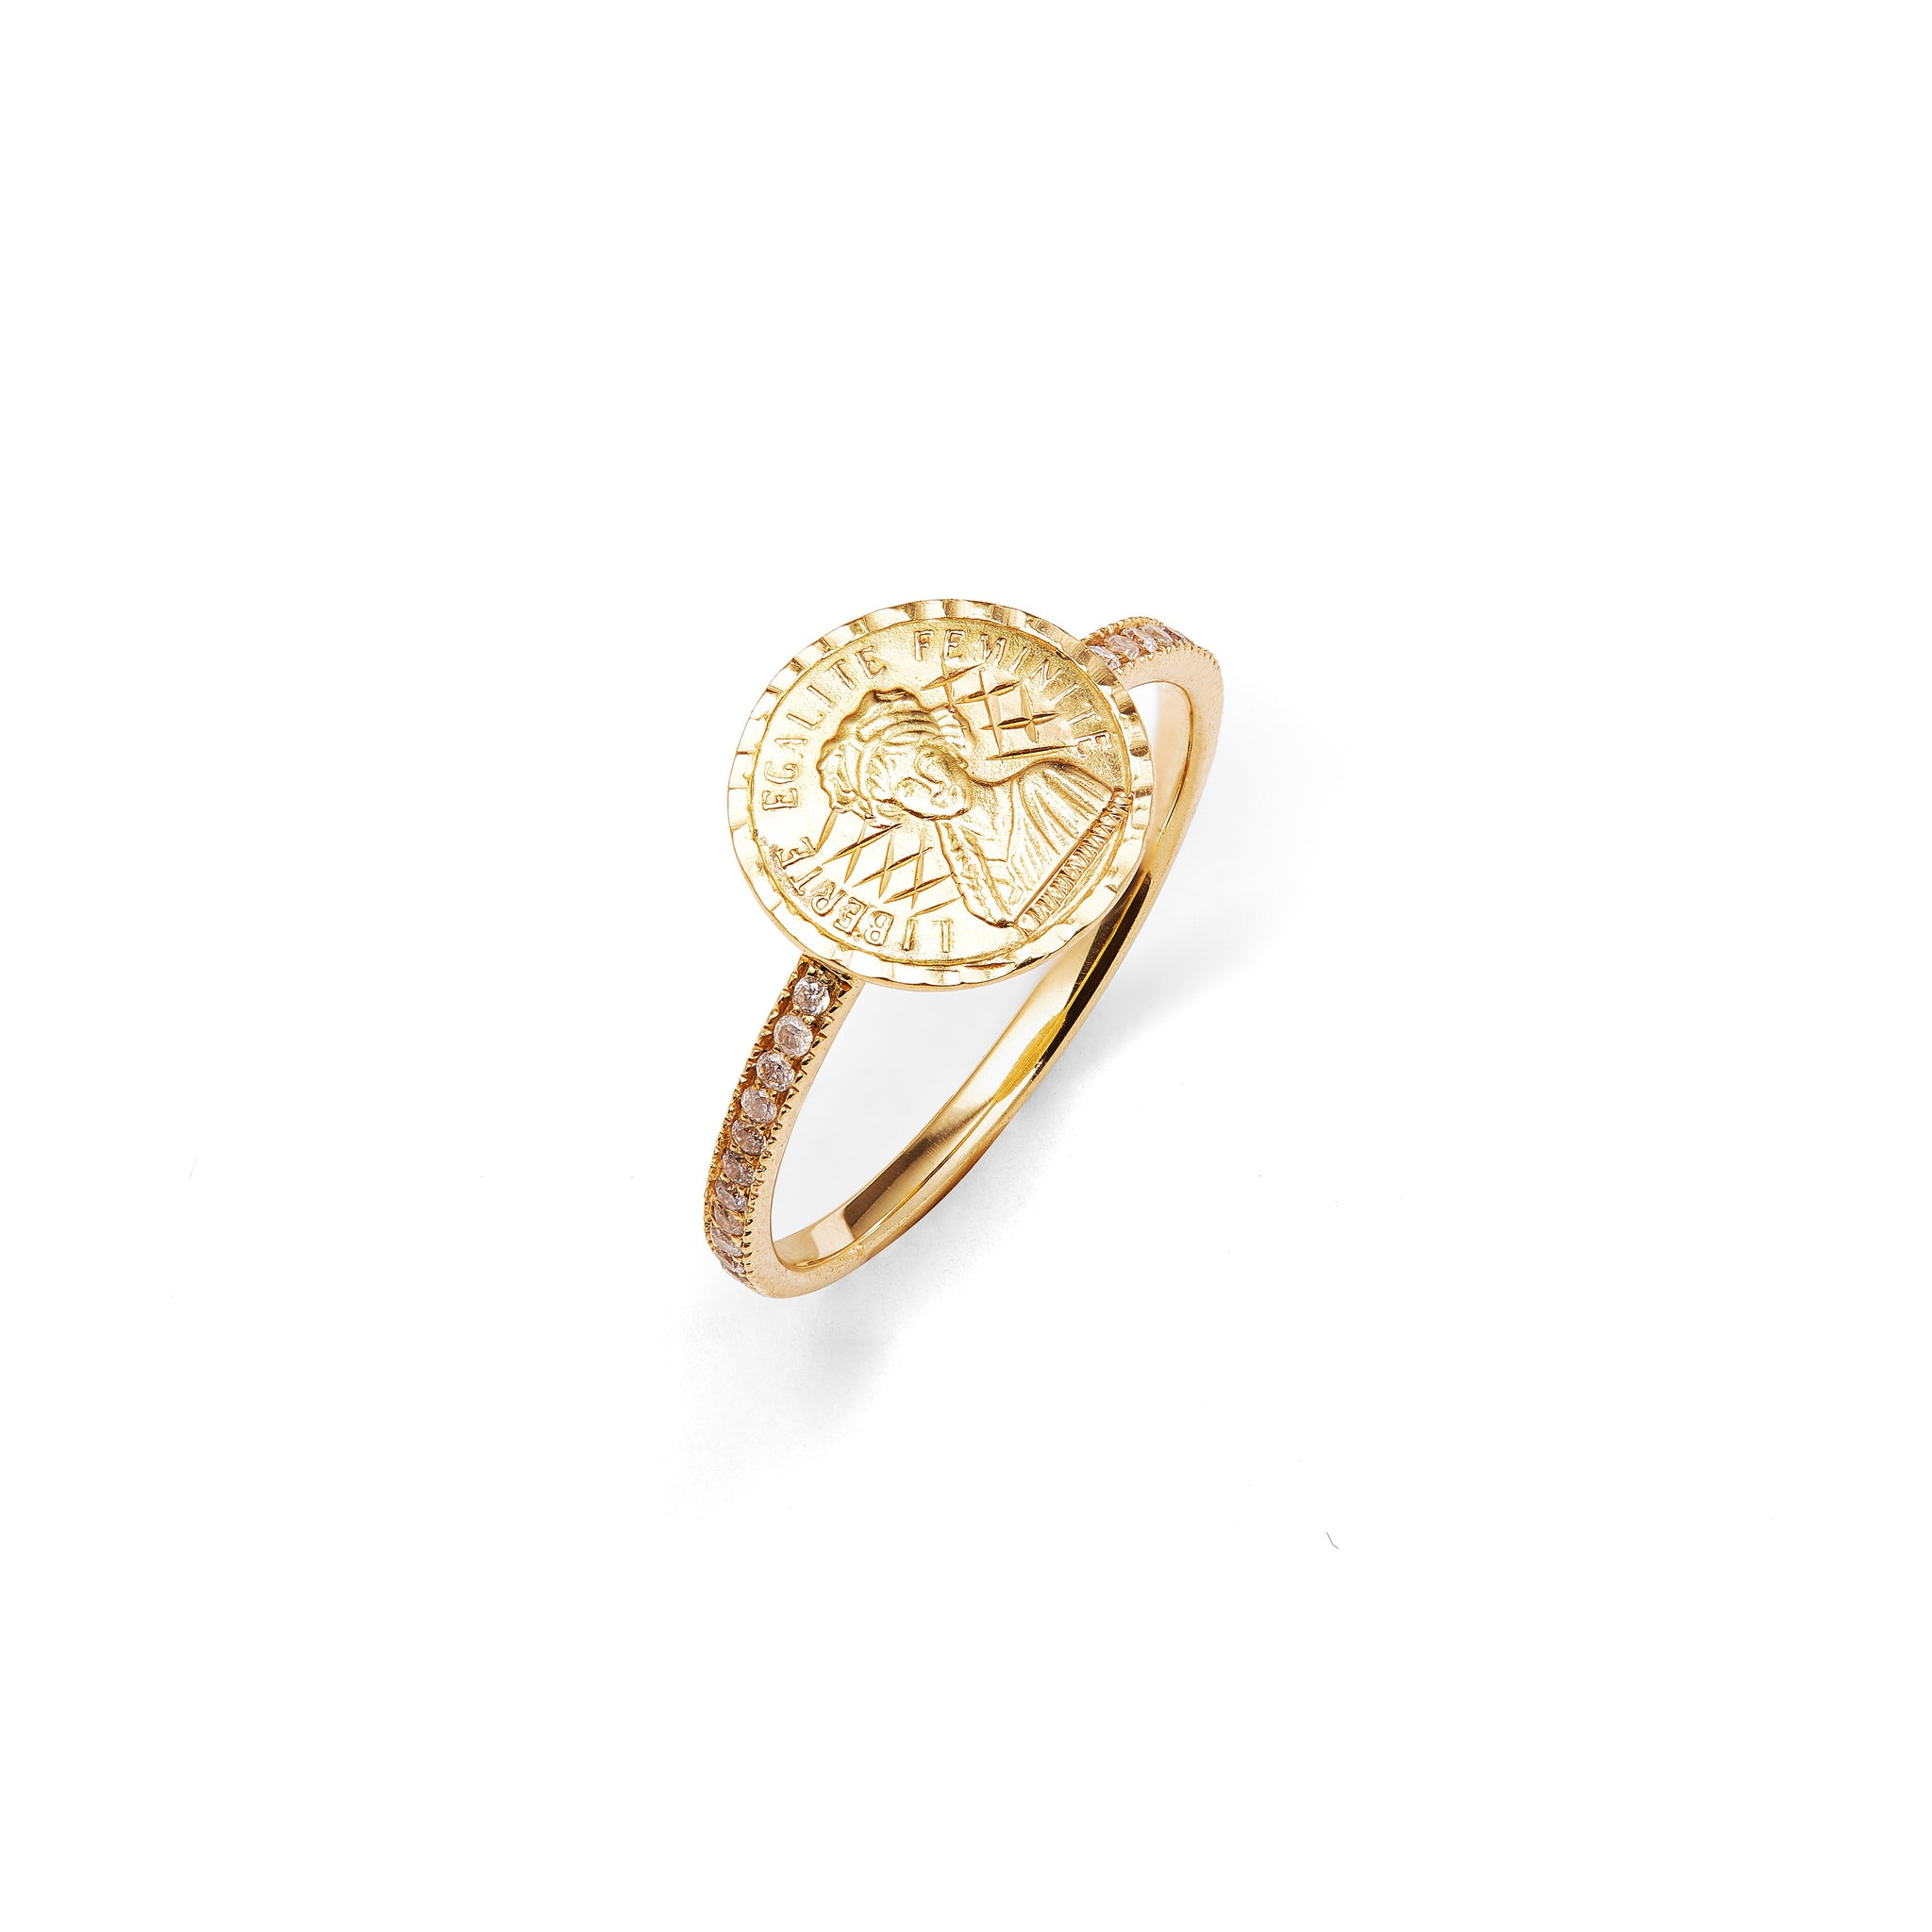 ANISSA KERMICHE - LOUISE D'OR PAVE COIN RING